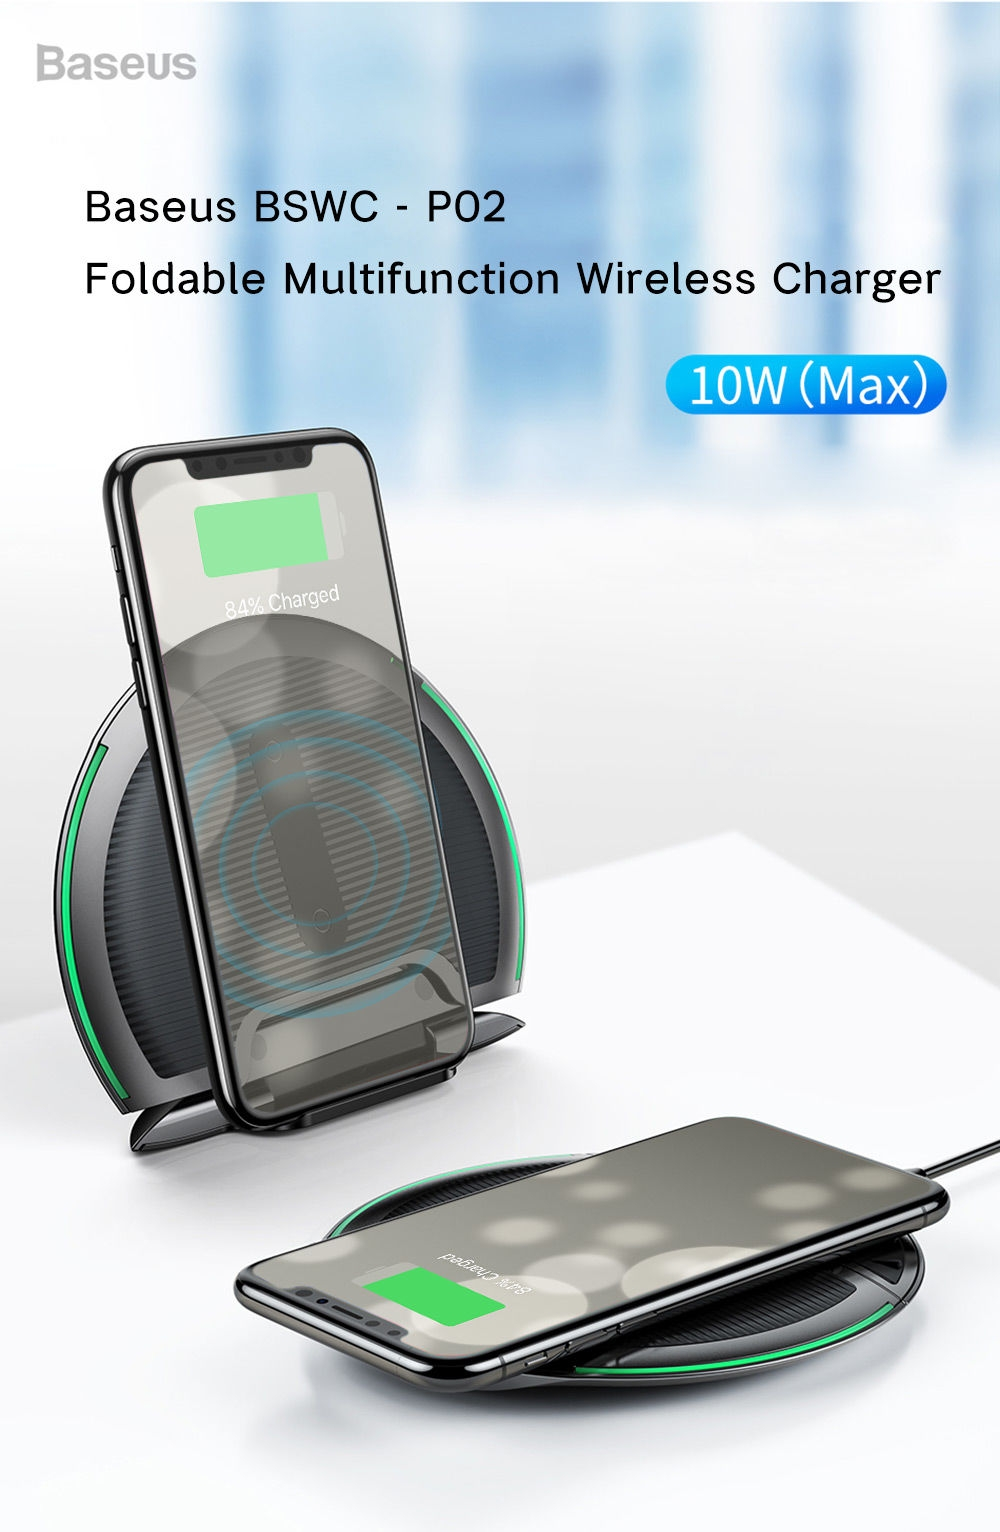 Baseus BSWC - P02 Foldable Multifunction Wireless Charger 10W Silica Gel